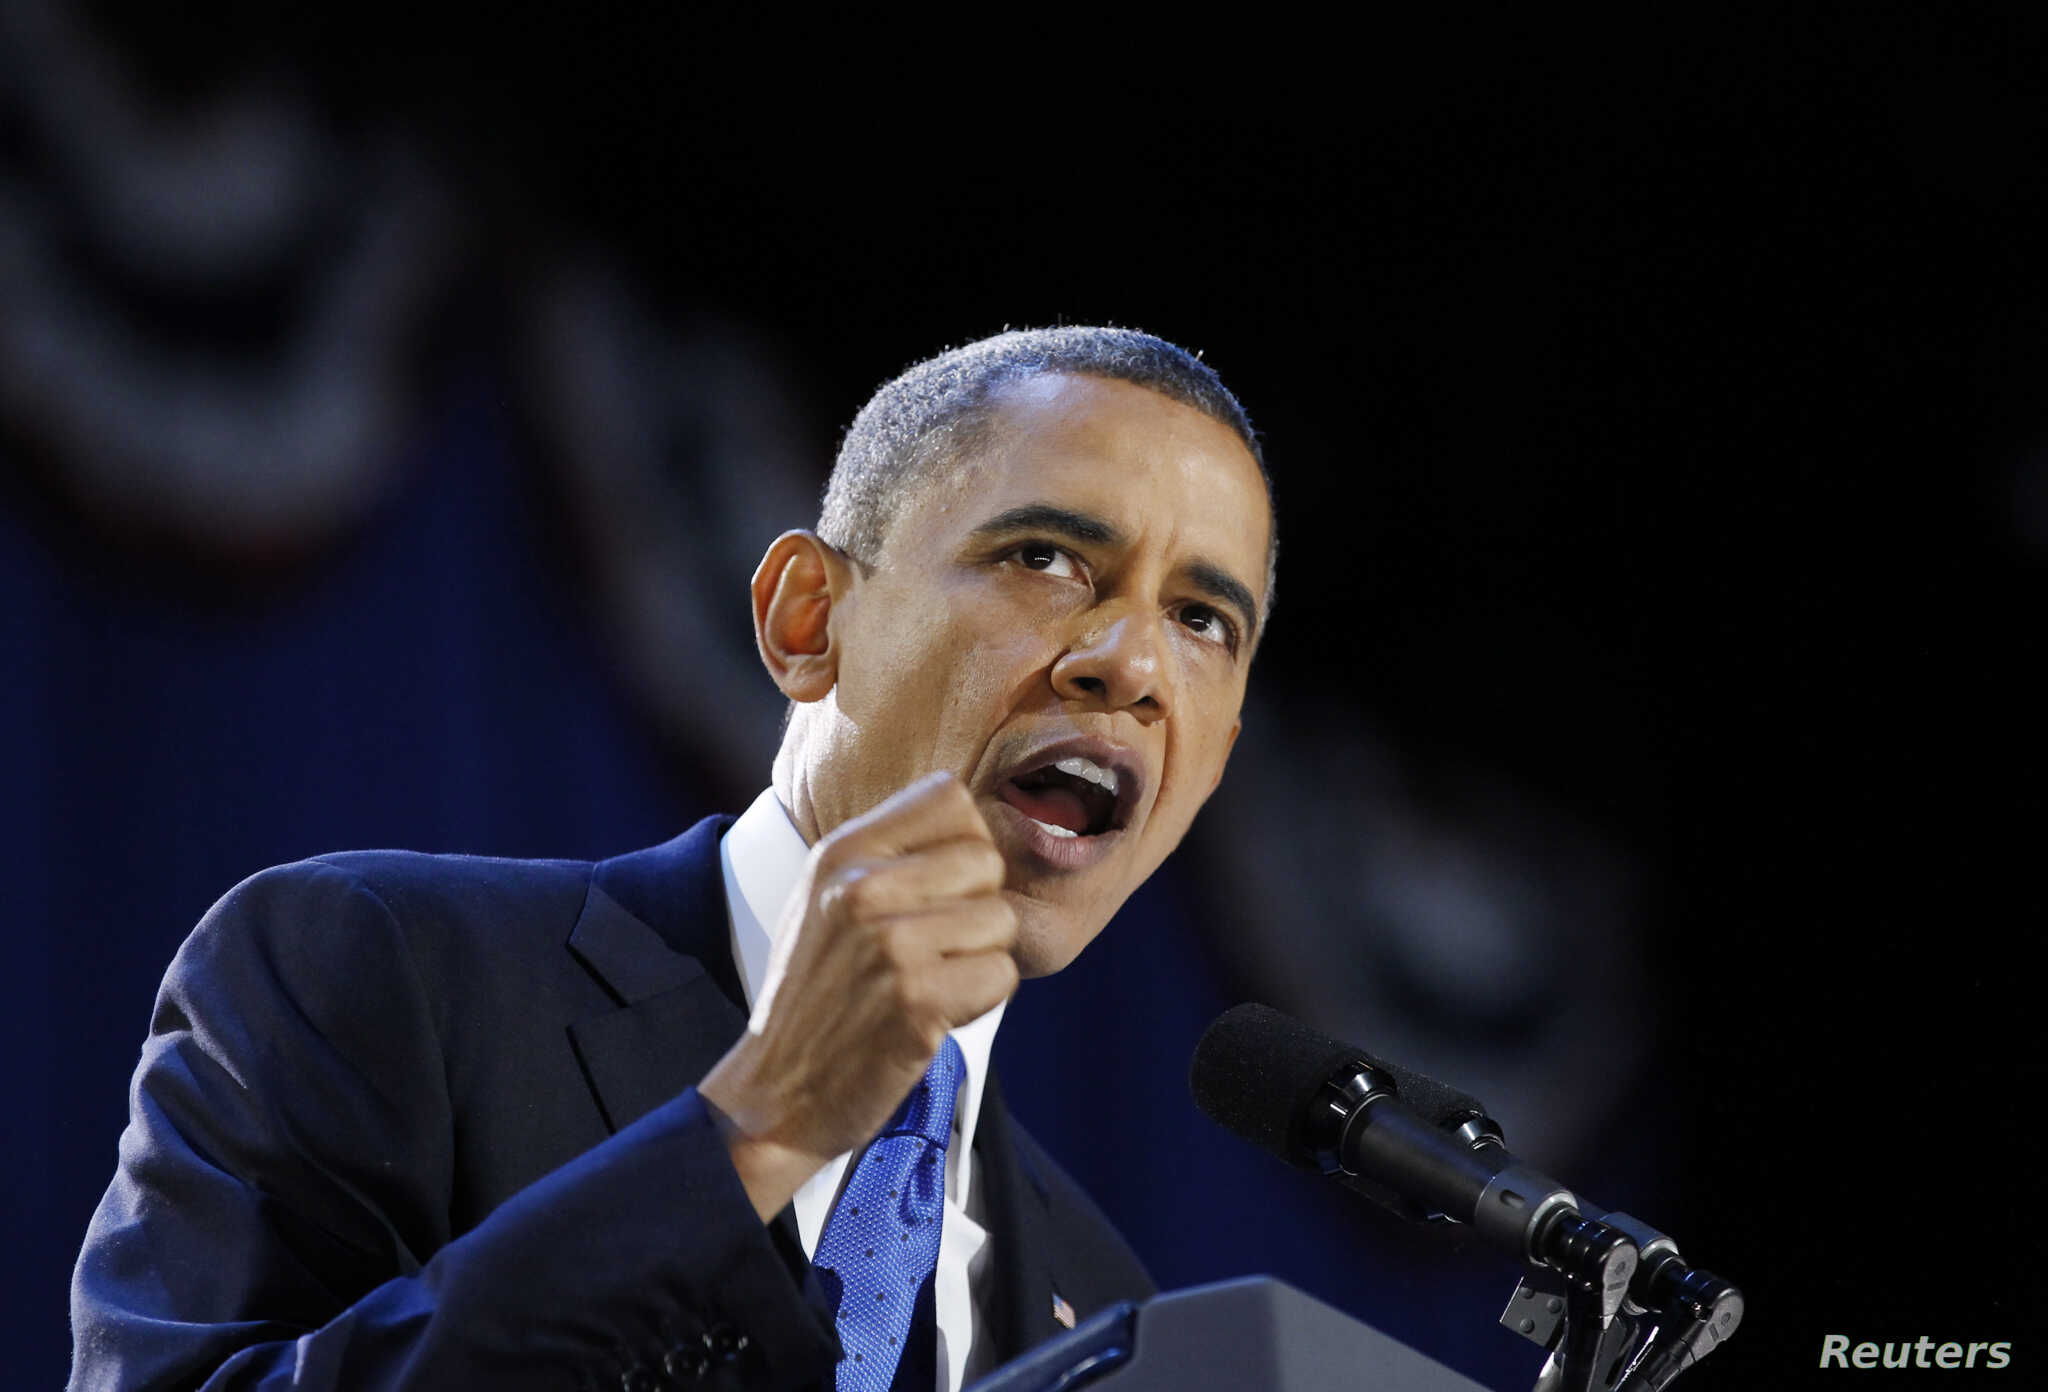 U.S. President Barack Obama gives his election night victory speech in Chicago, November 7, 2012.